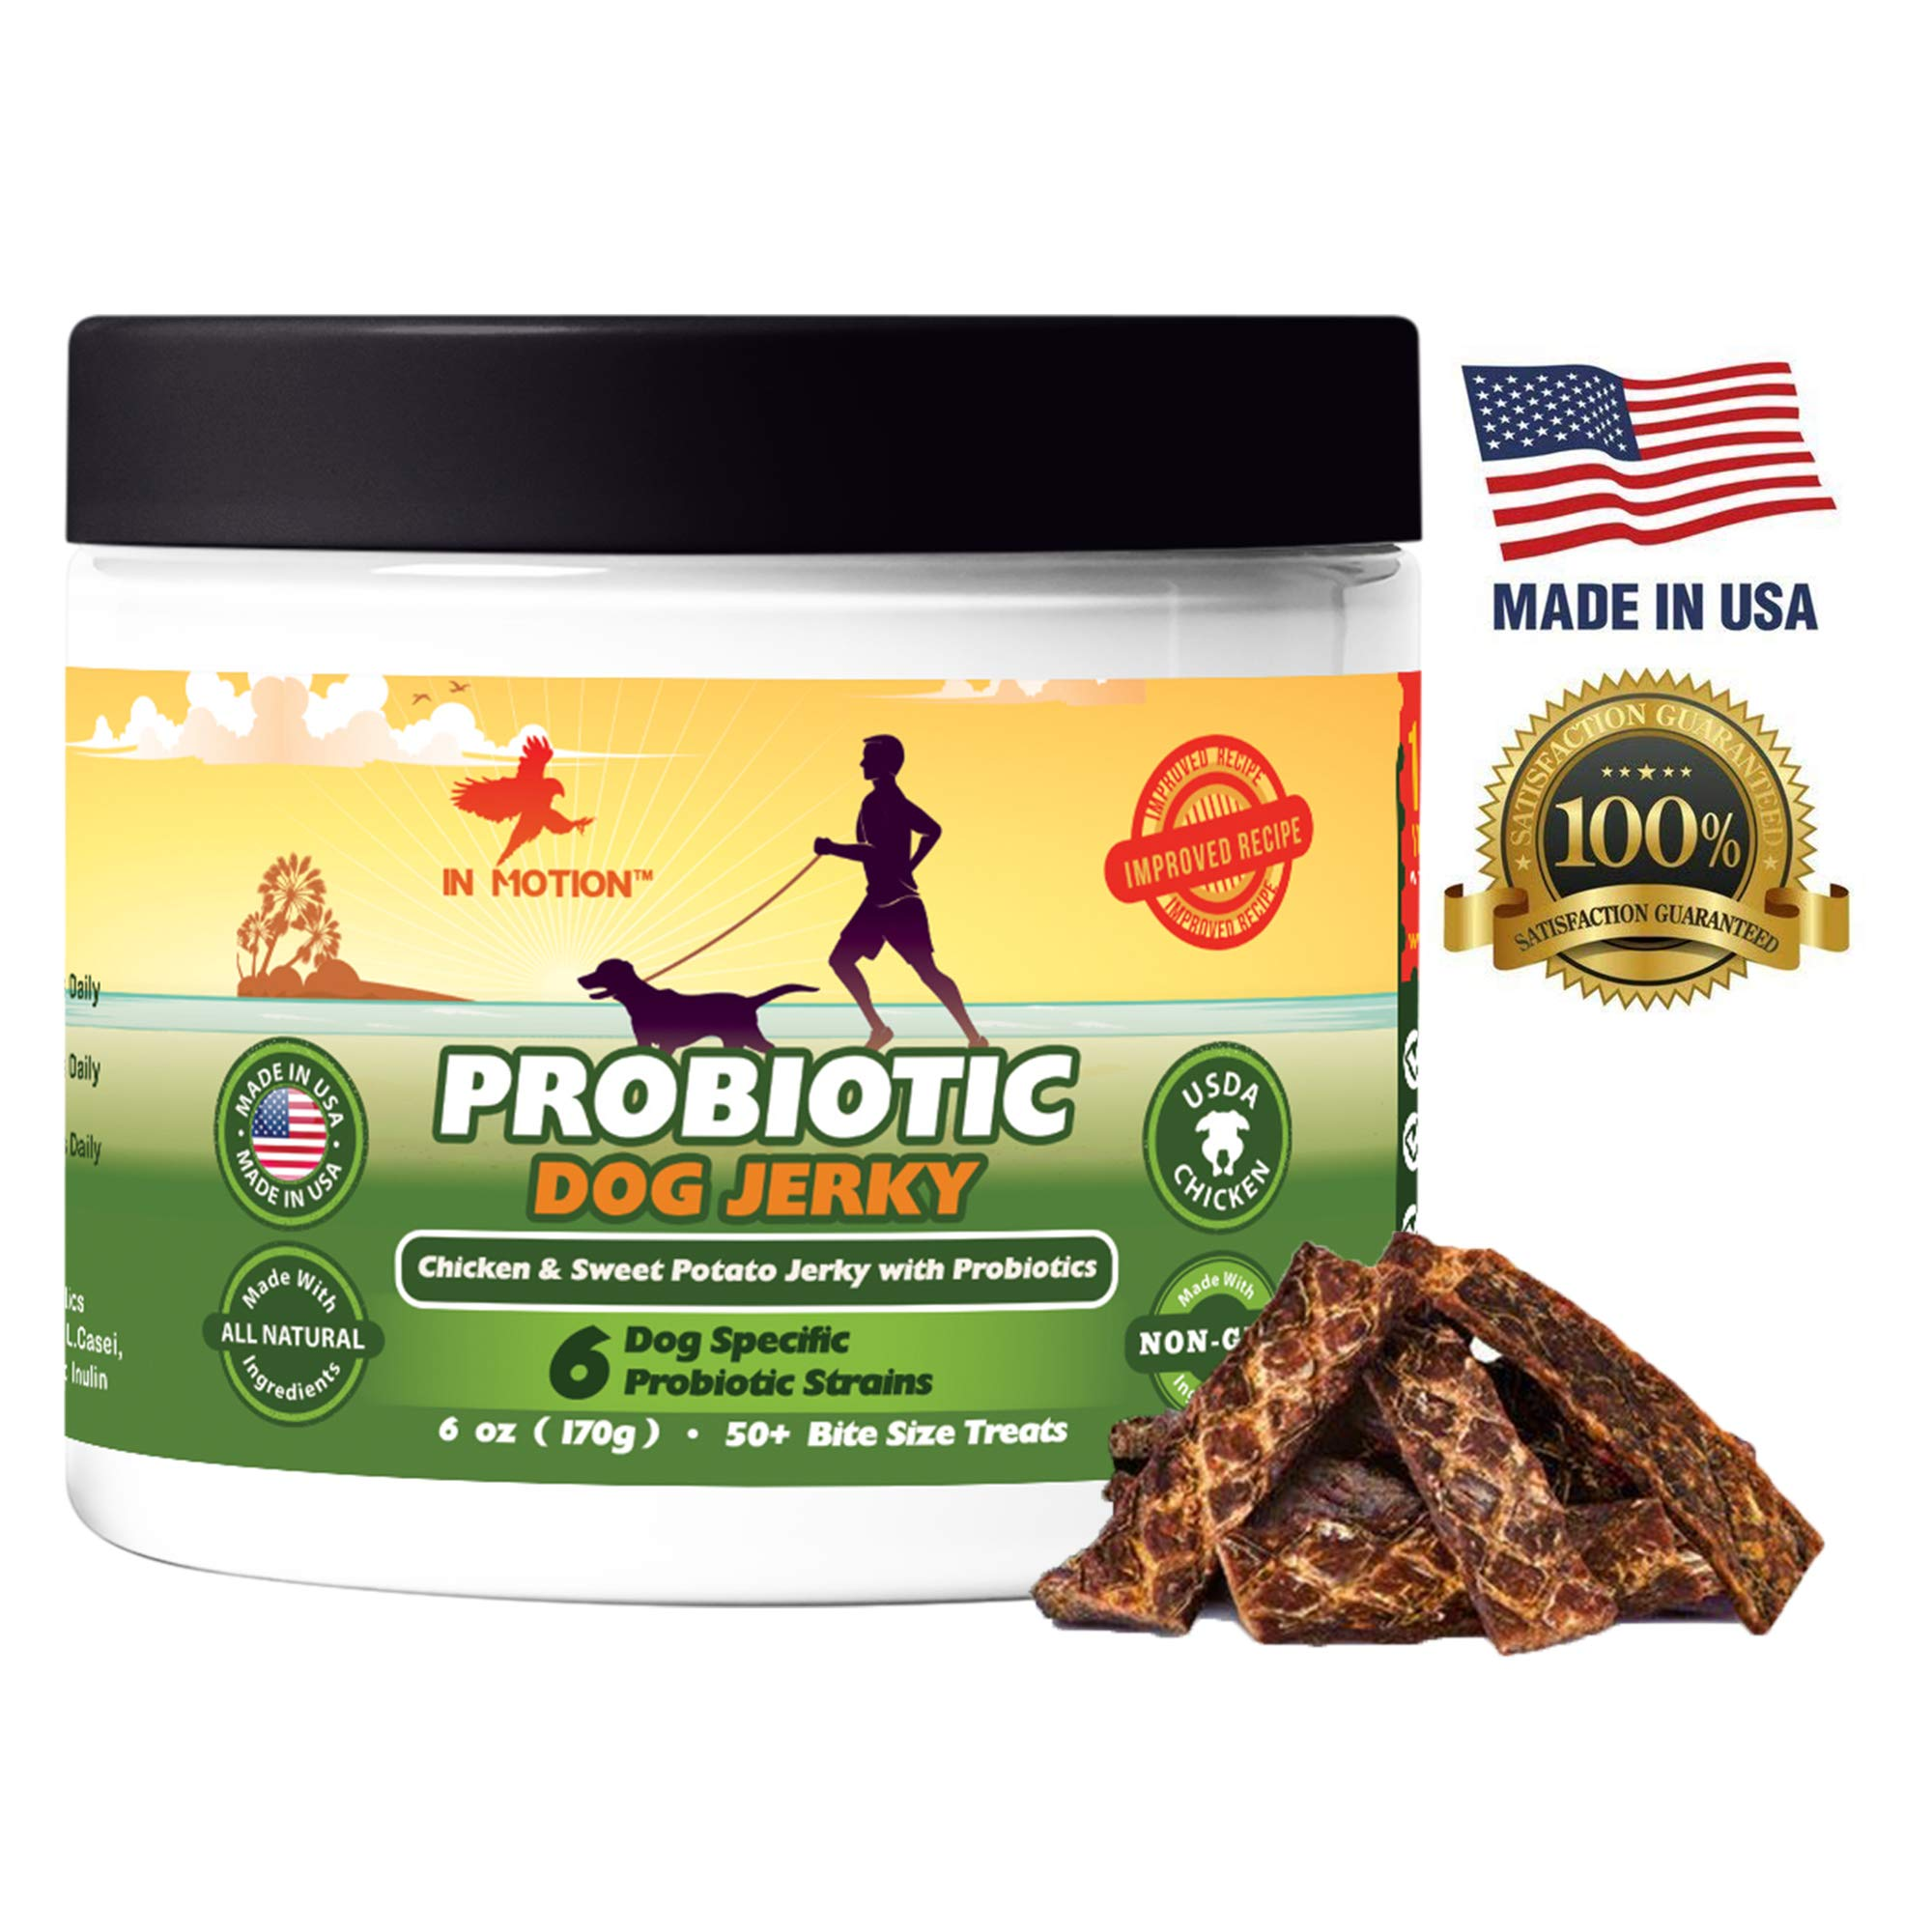 Healthy Dog Treats Probiotic Jerky- All Natural Chicken Sweet Potato Pet Chews and Probiotics Supplement - Chewable Treat for Dogs Best for Pets Wellness, Gas or Diarrhea - Made in USA Only: 6ounces by In Motion